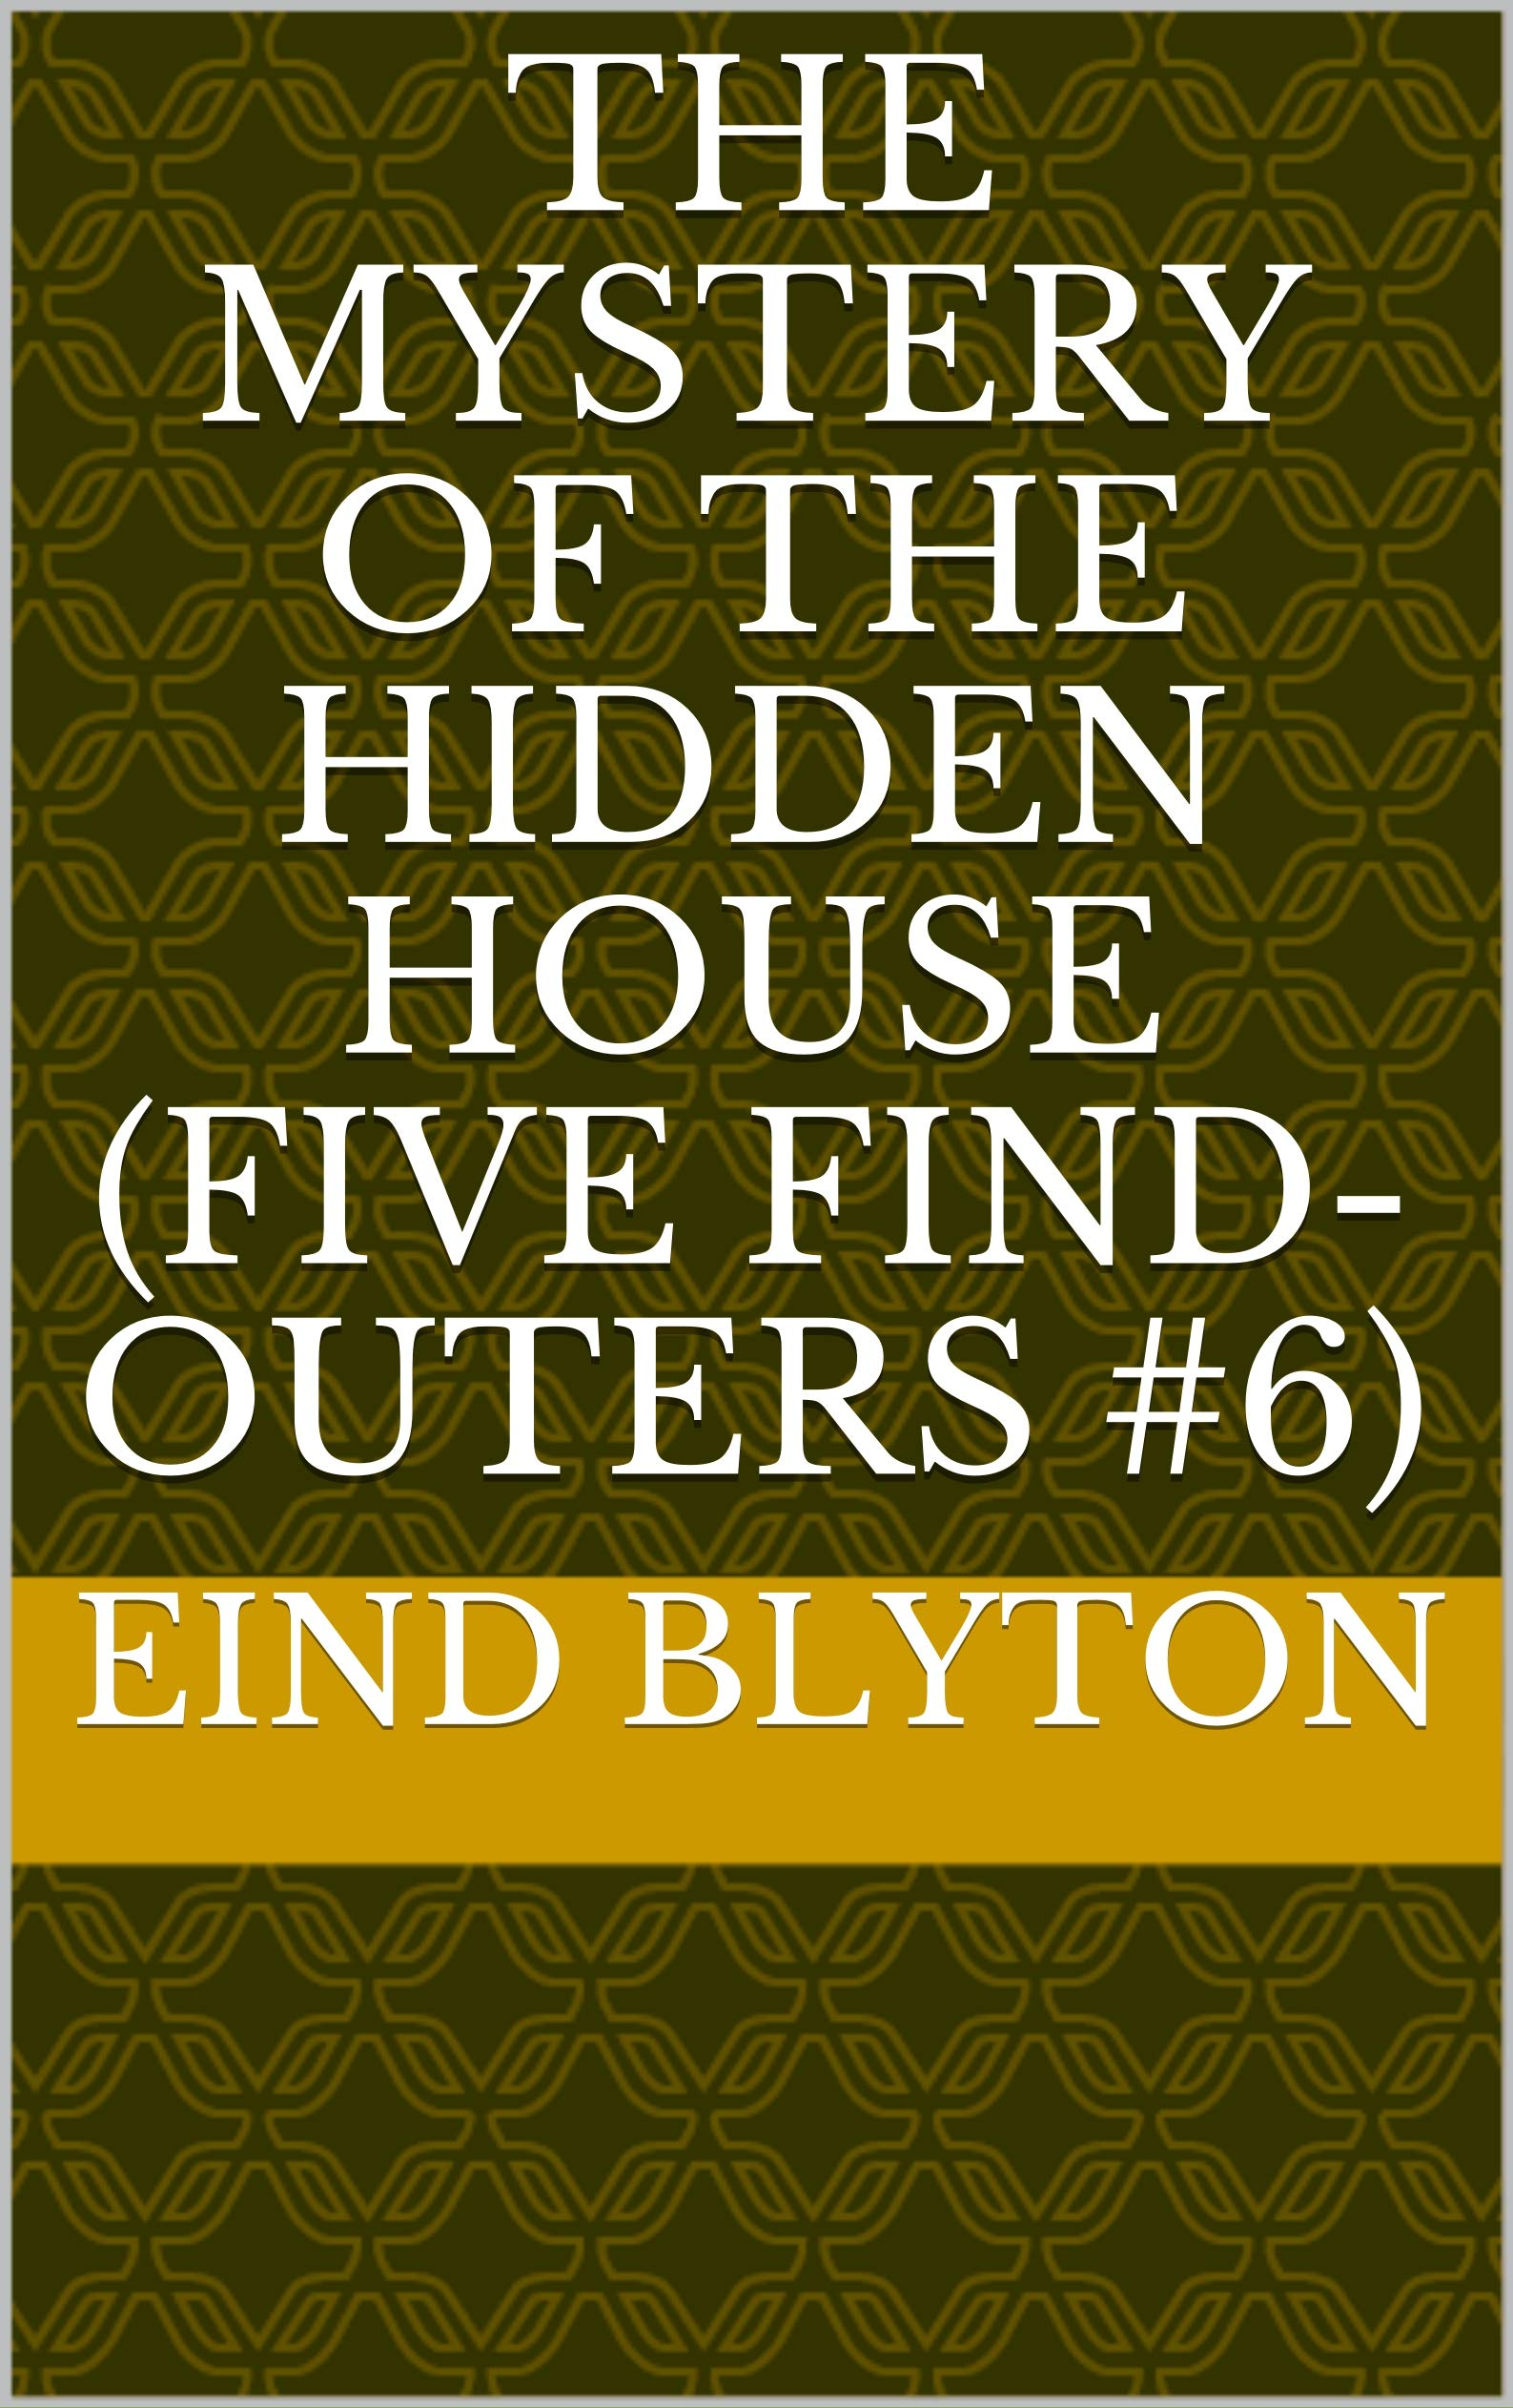 The Mystery of the Hidden House (Five Find-Outers #6)